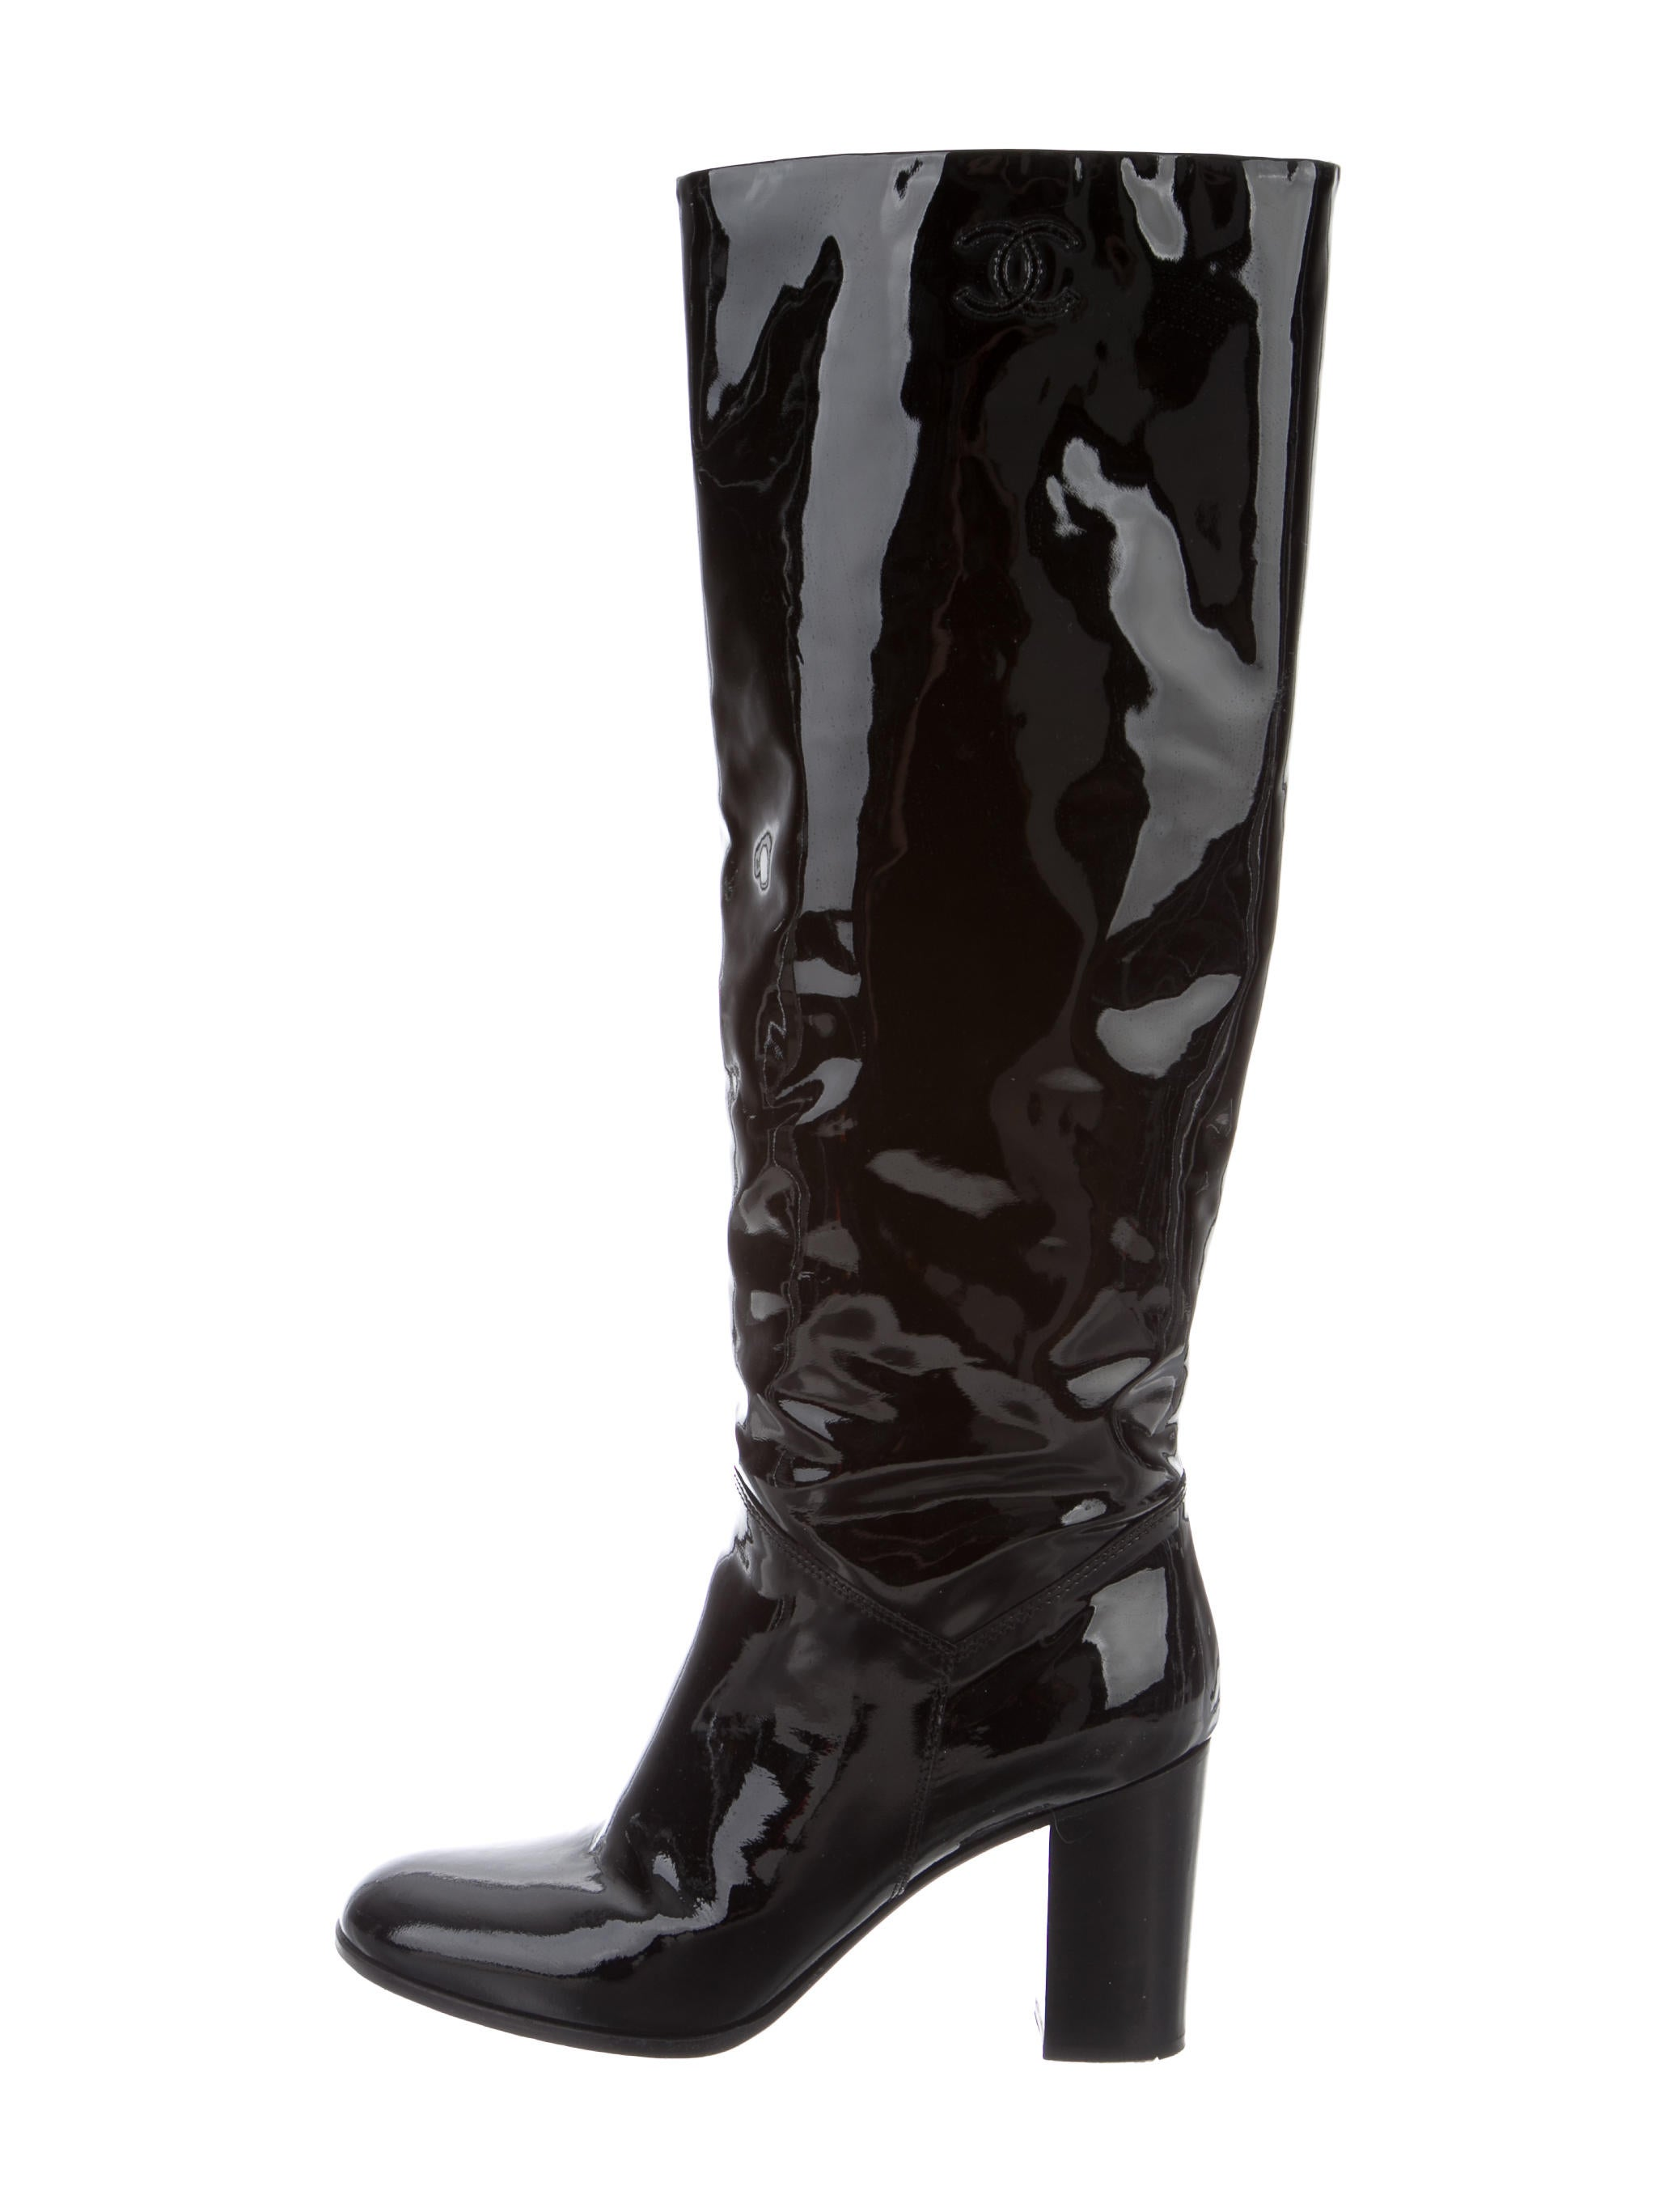 Find knee high leather patent black boots at ShopStyle. Shop the latest collection of knee high leather patent black boots from the most popular.